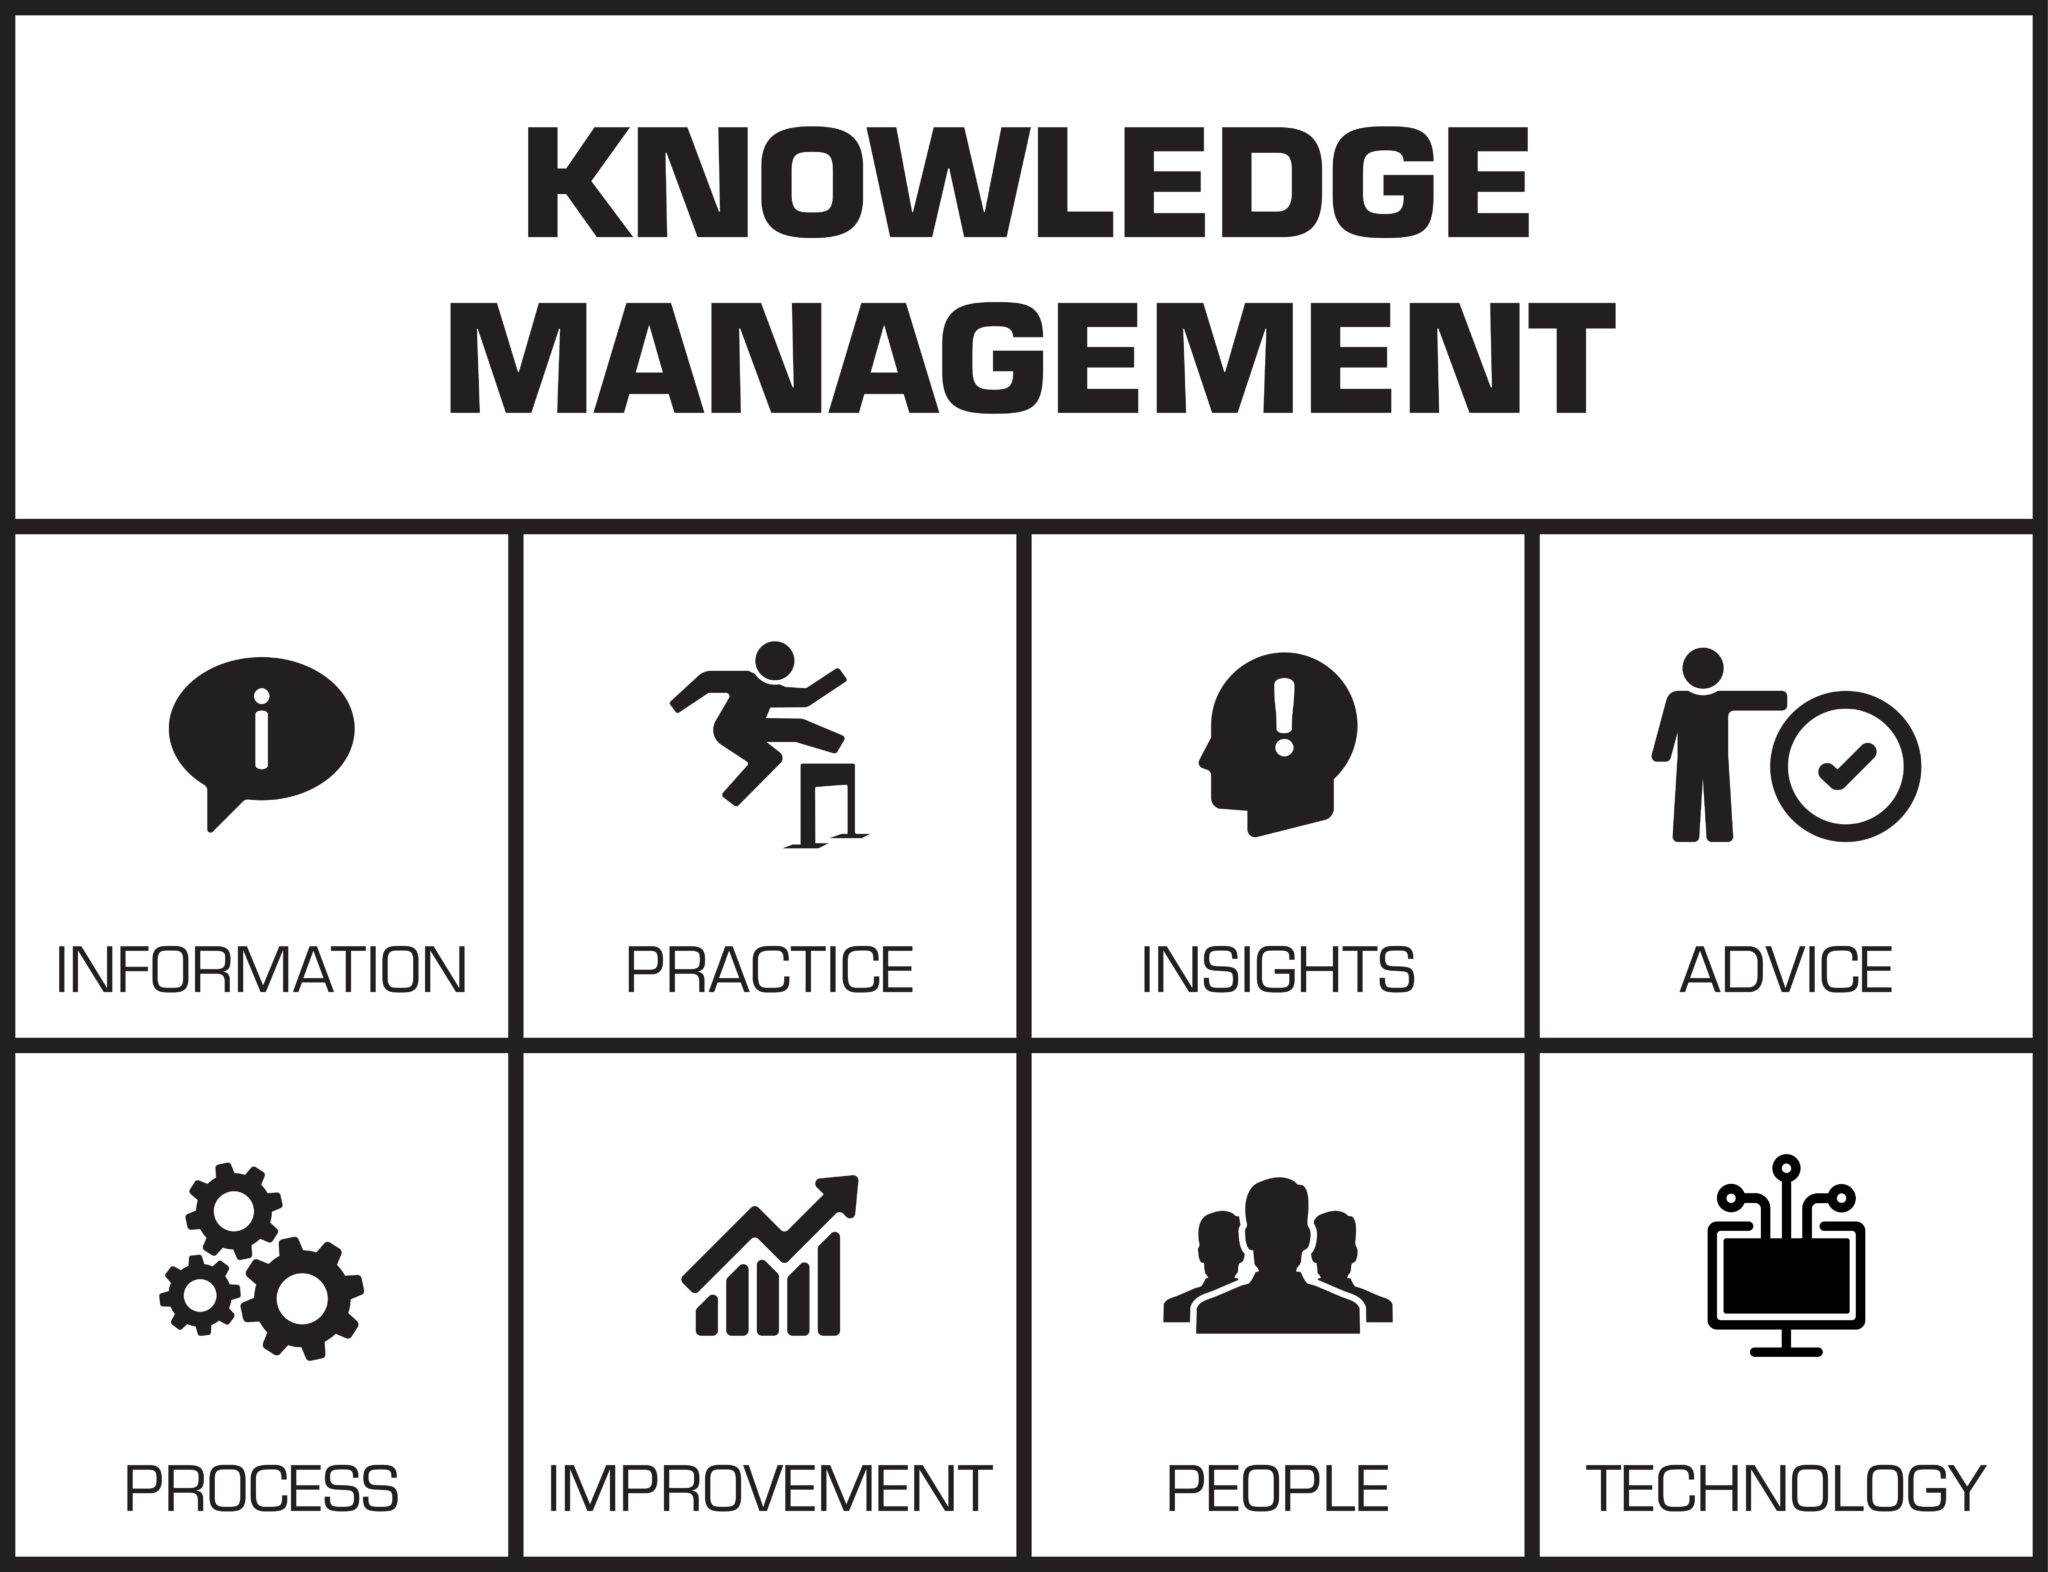 Differences Between Information Management and Knowledge Management